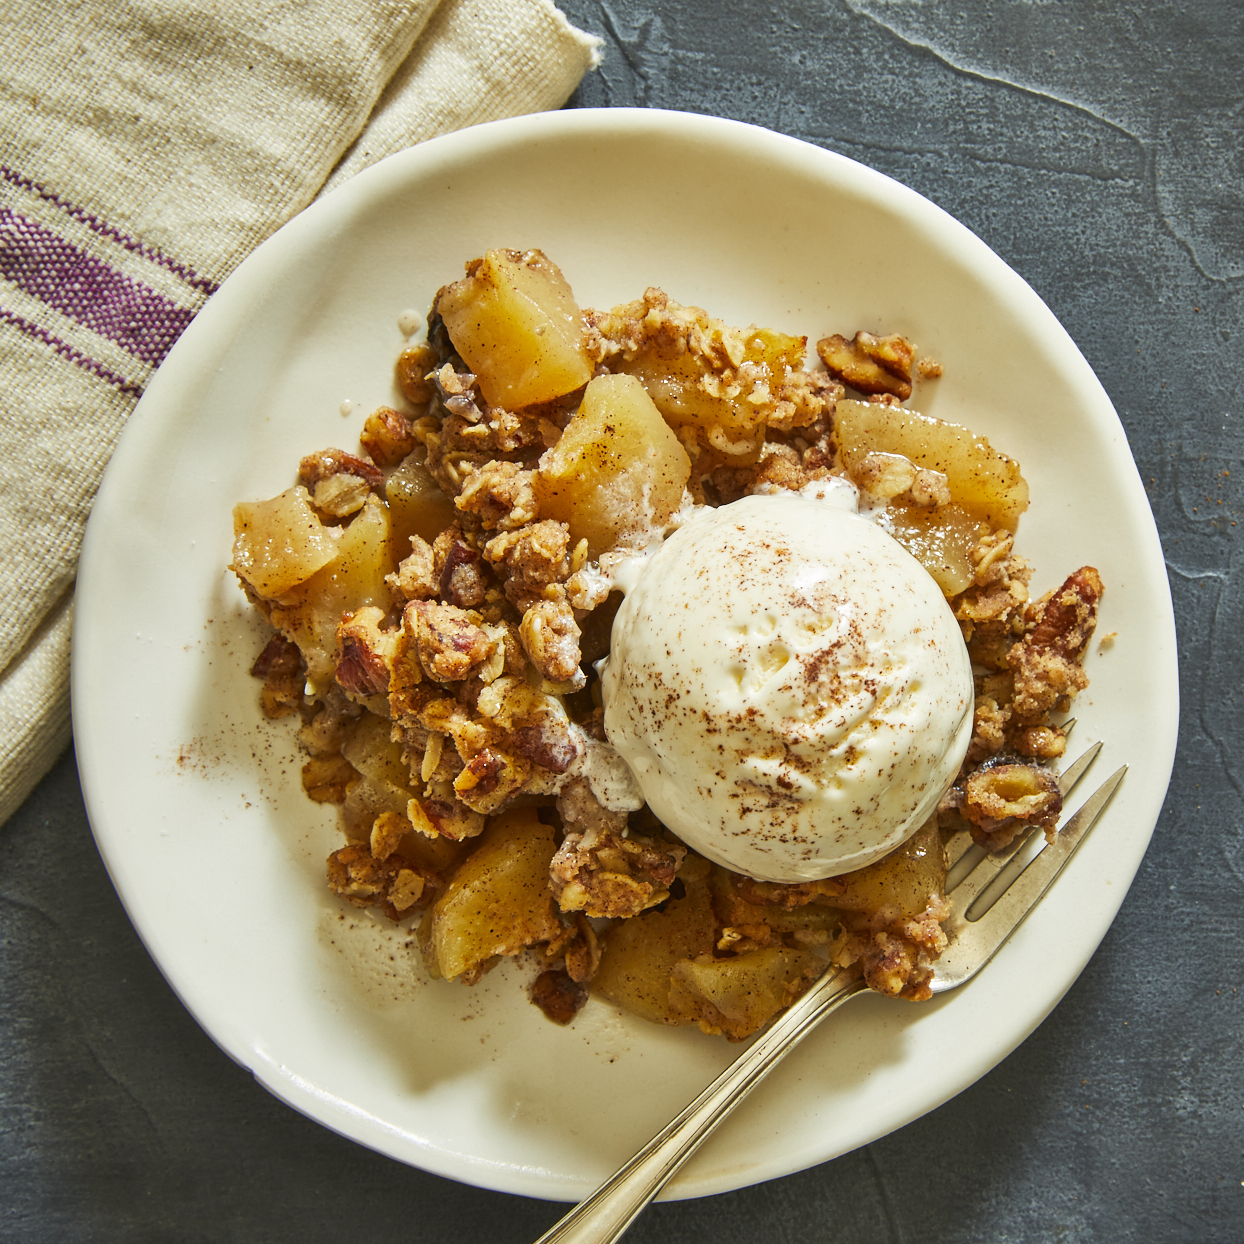 Apple crisp in your Instant Pot?! Yes, you can! This easy Instant-Pot apple crisp has a nice balance of flavors from lemon zest and juice, brown sugar and sweet Honeycrisp apples. The whole-wheat flour and pecans add texture to the topping, which remains moist and delicious as it melds with the other flavors. To keep the texture from getting mushy, be sure not to cut the apple pieces too small. One-inch cubes will do the trick!